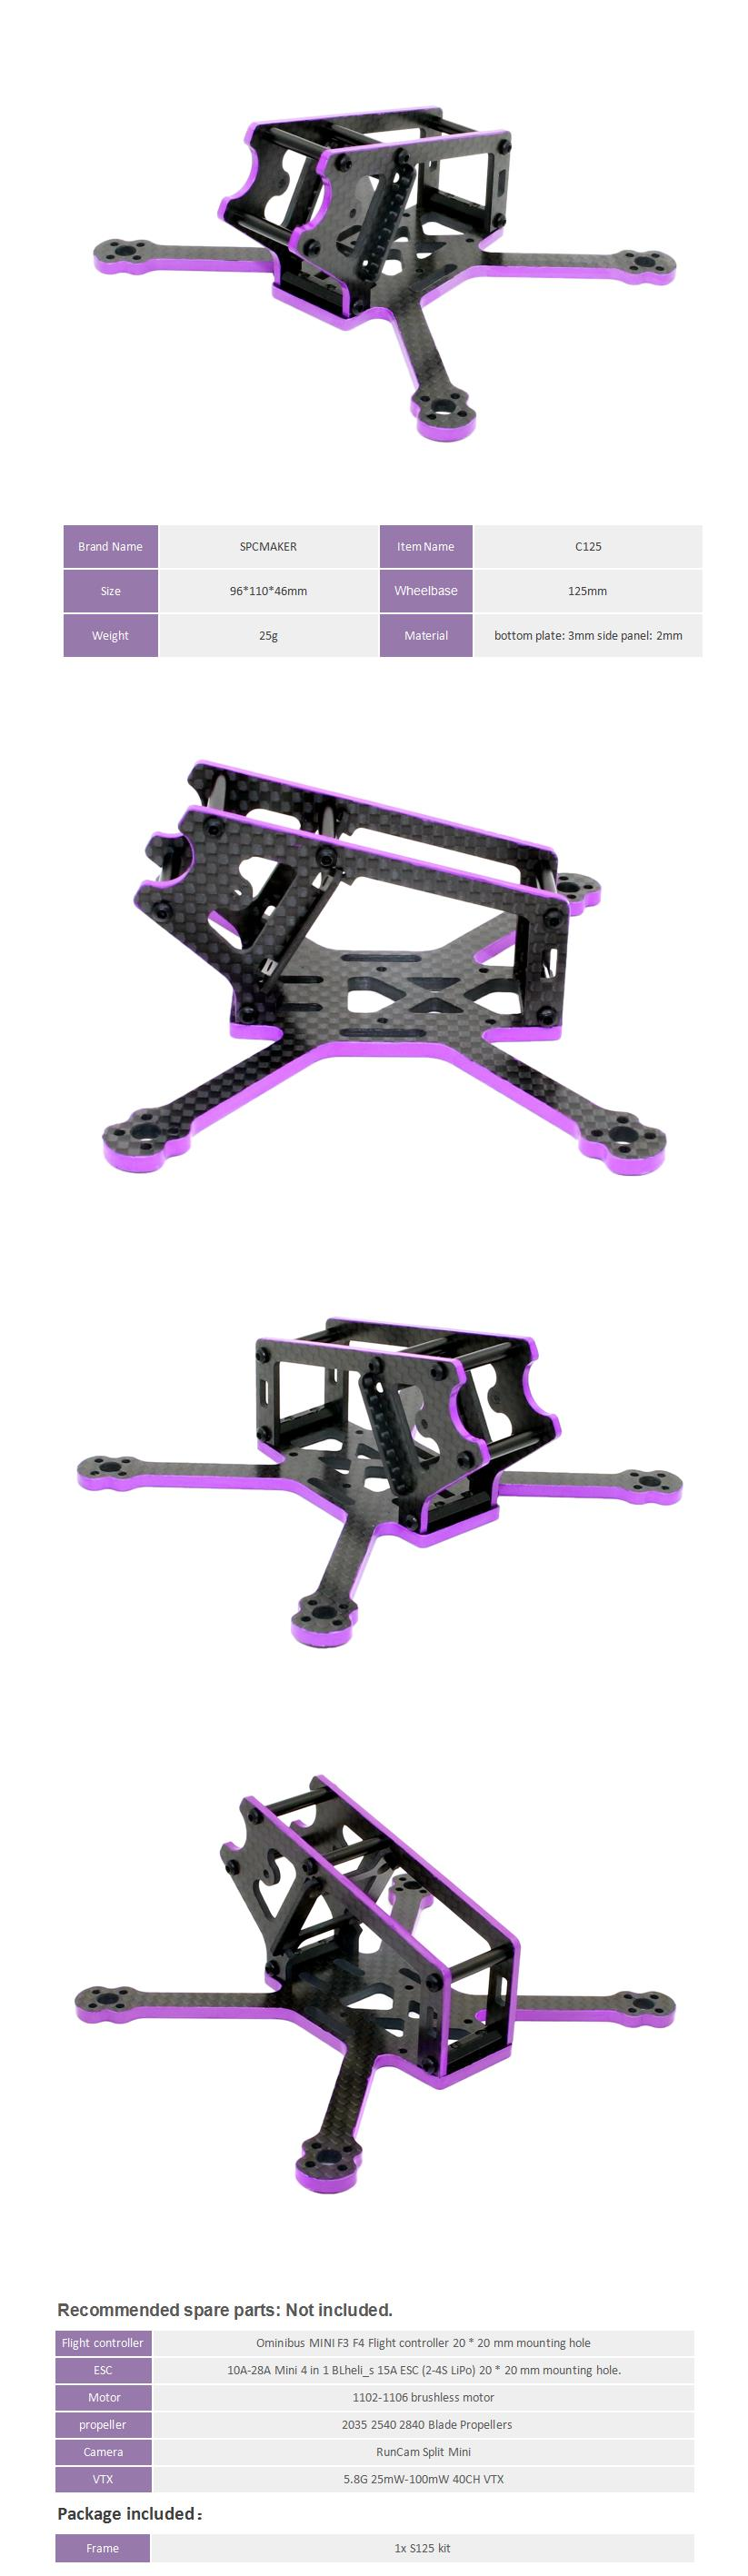 SPC MAKER S125 125mm Wheelbase 3mm Arm Carbon Fiber FPV Racing Frame Kit